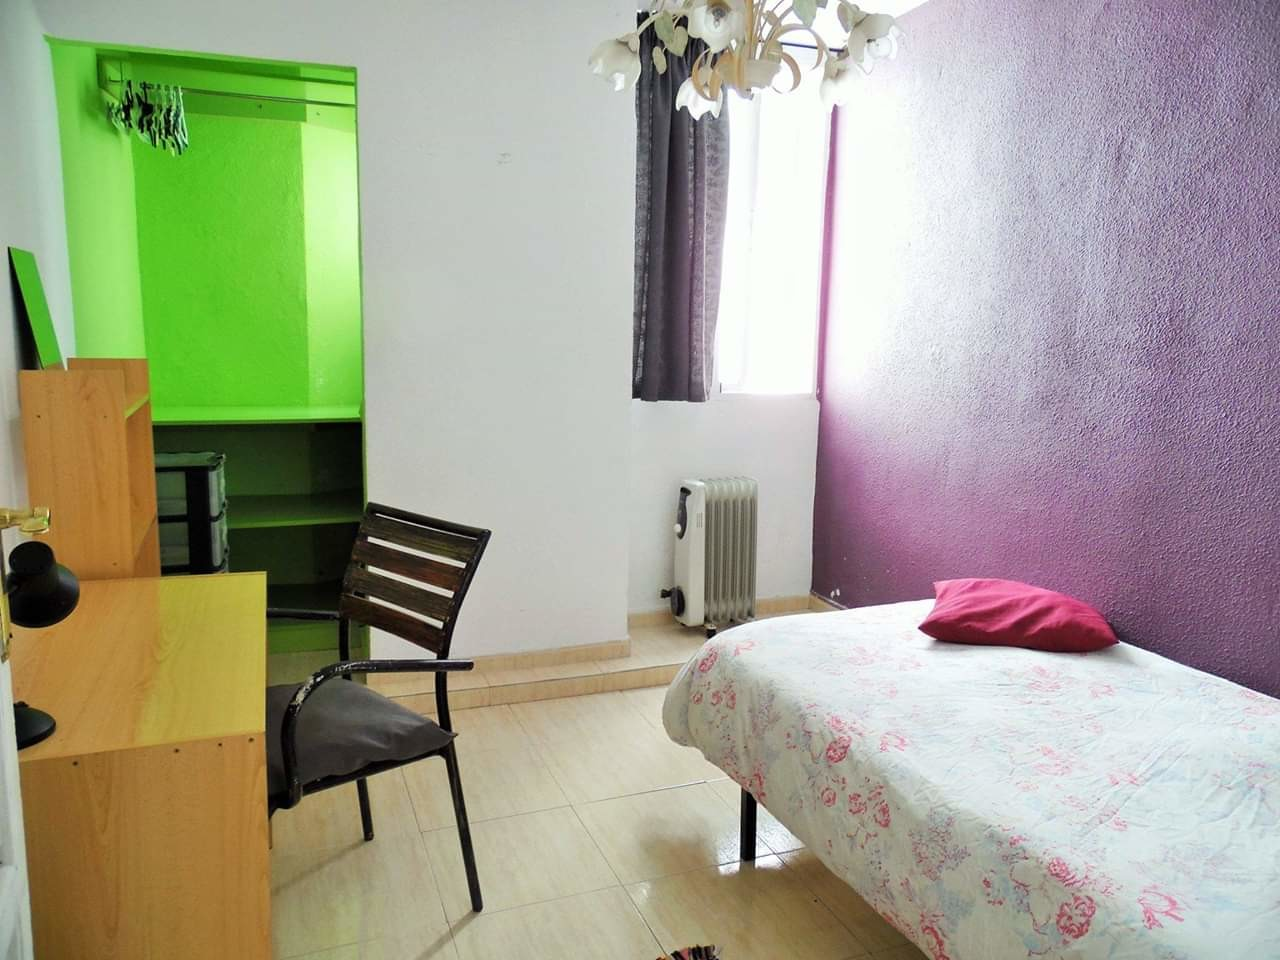 bedroom-in-shared-flat-a112166495bf685435ce7fbe70c0a4f9